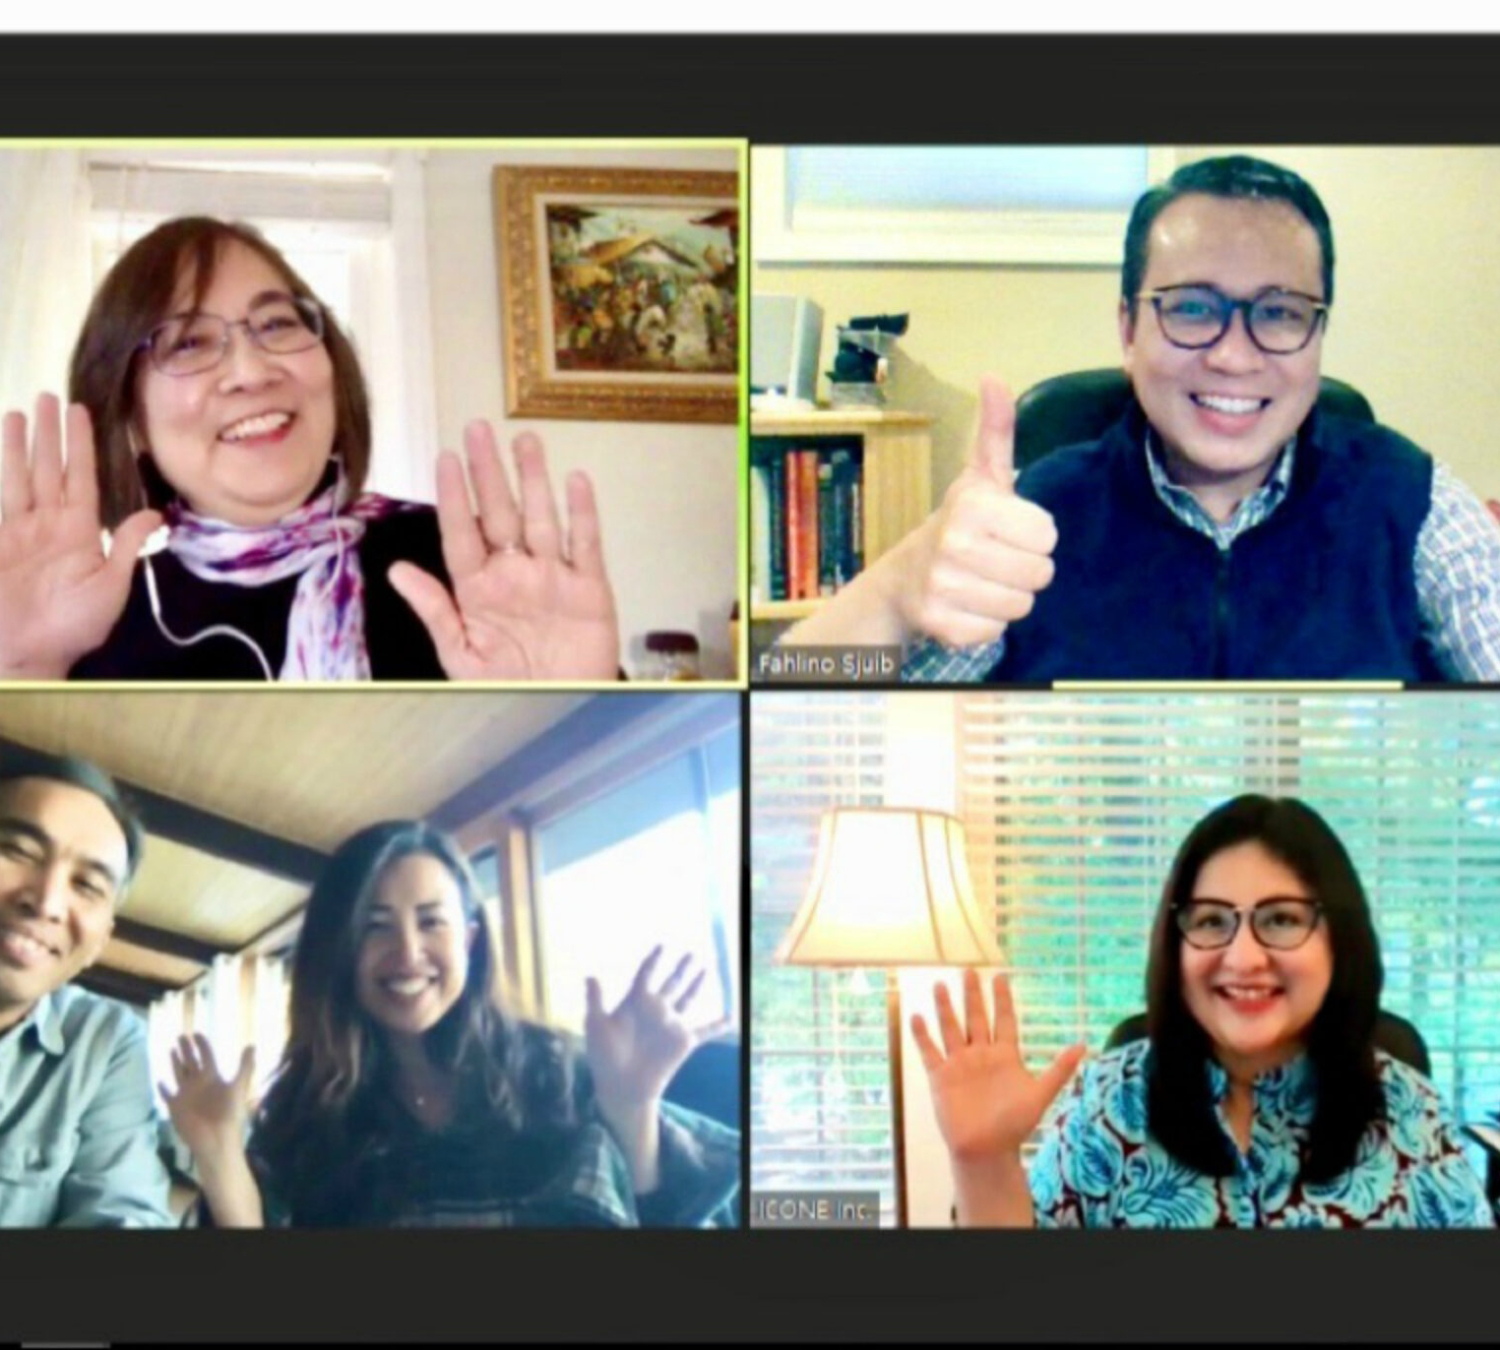 Zoom meeting (Oct 11, '20)